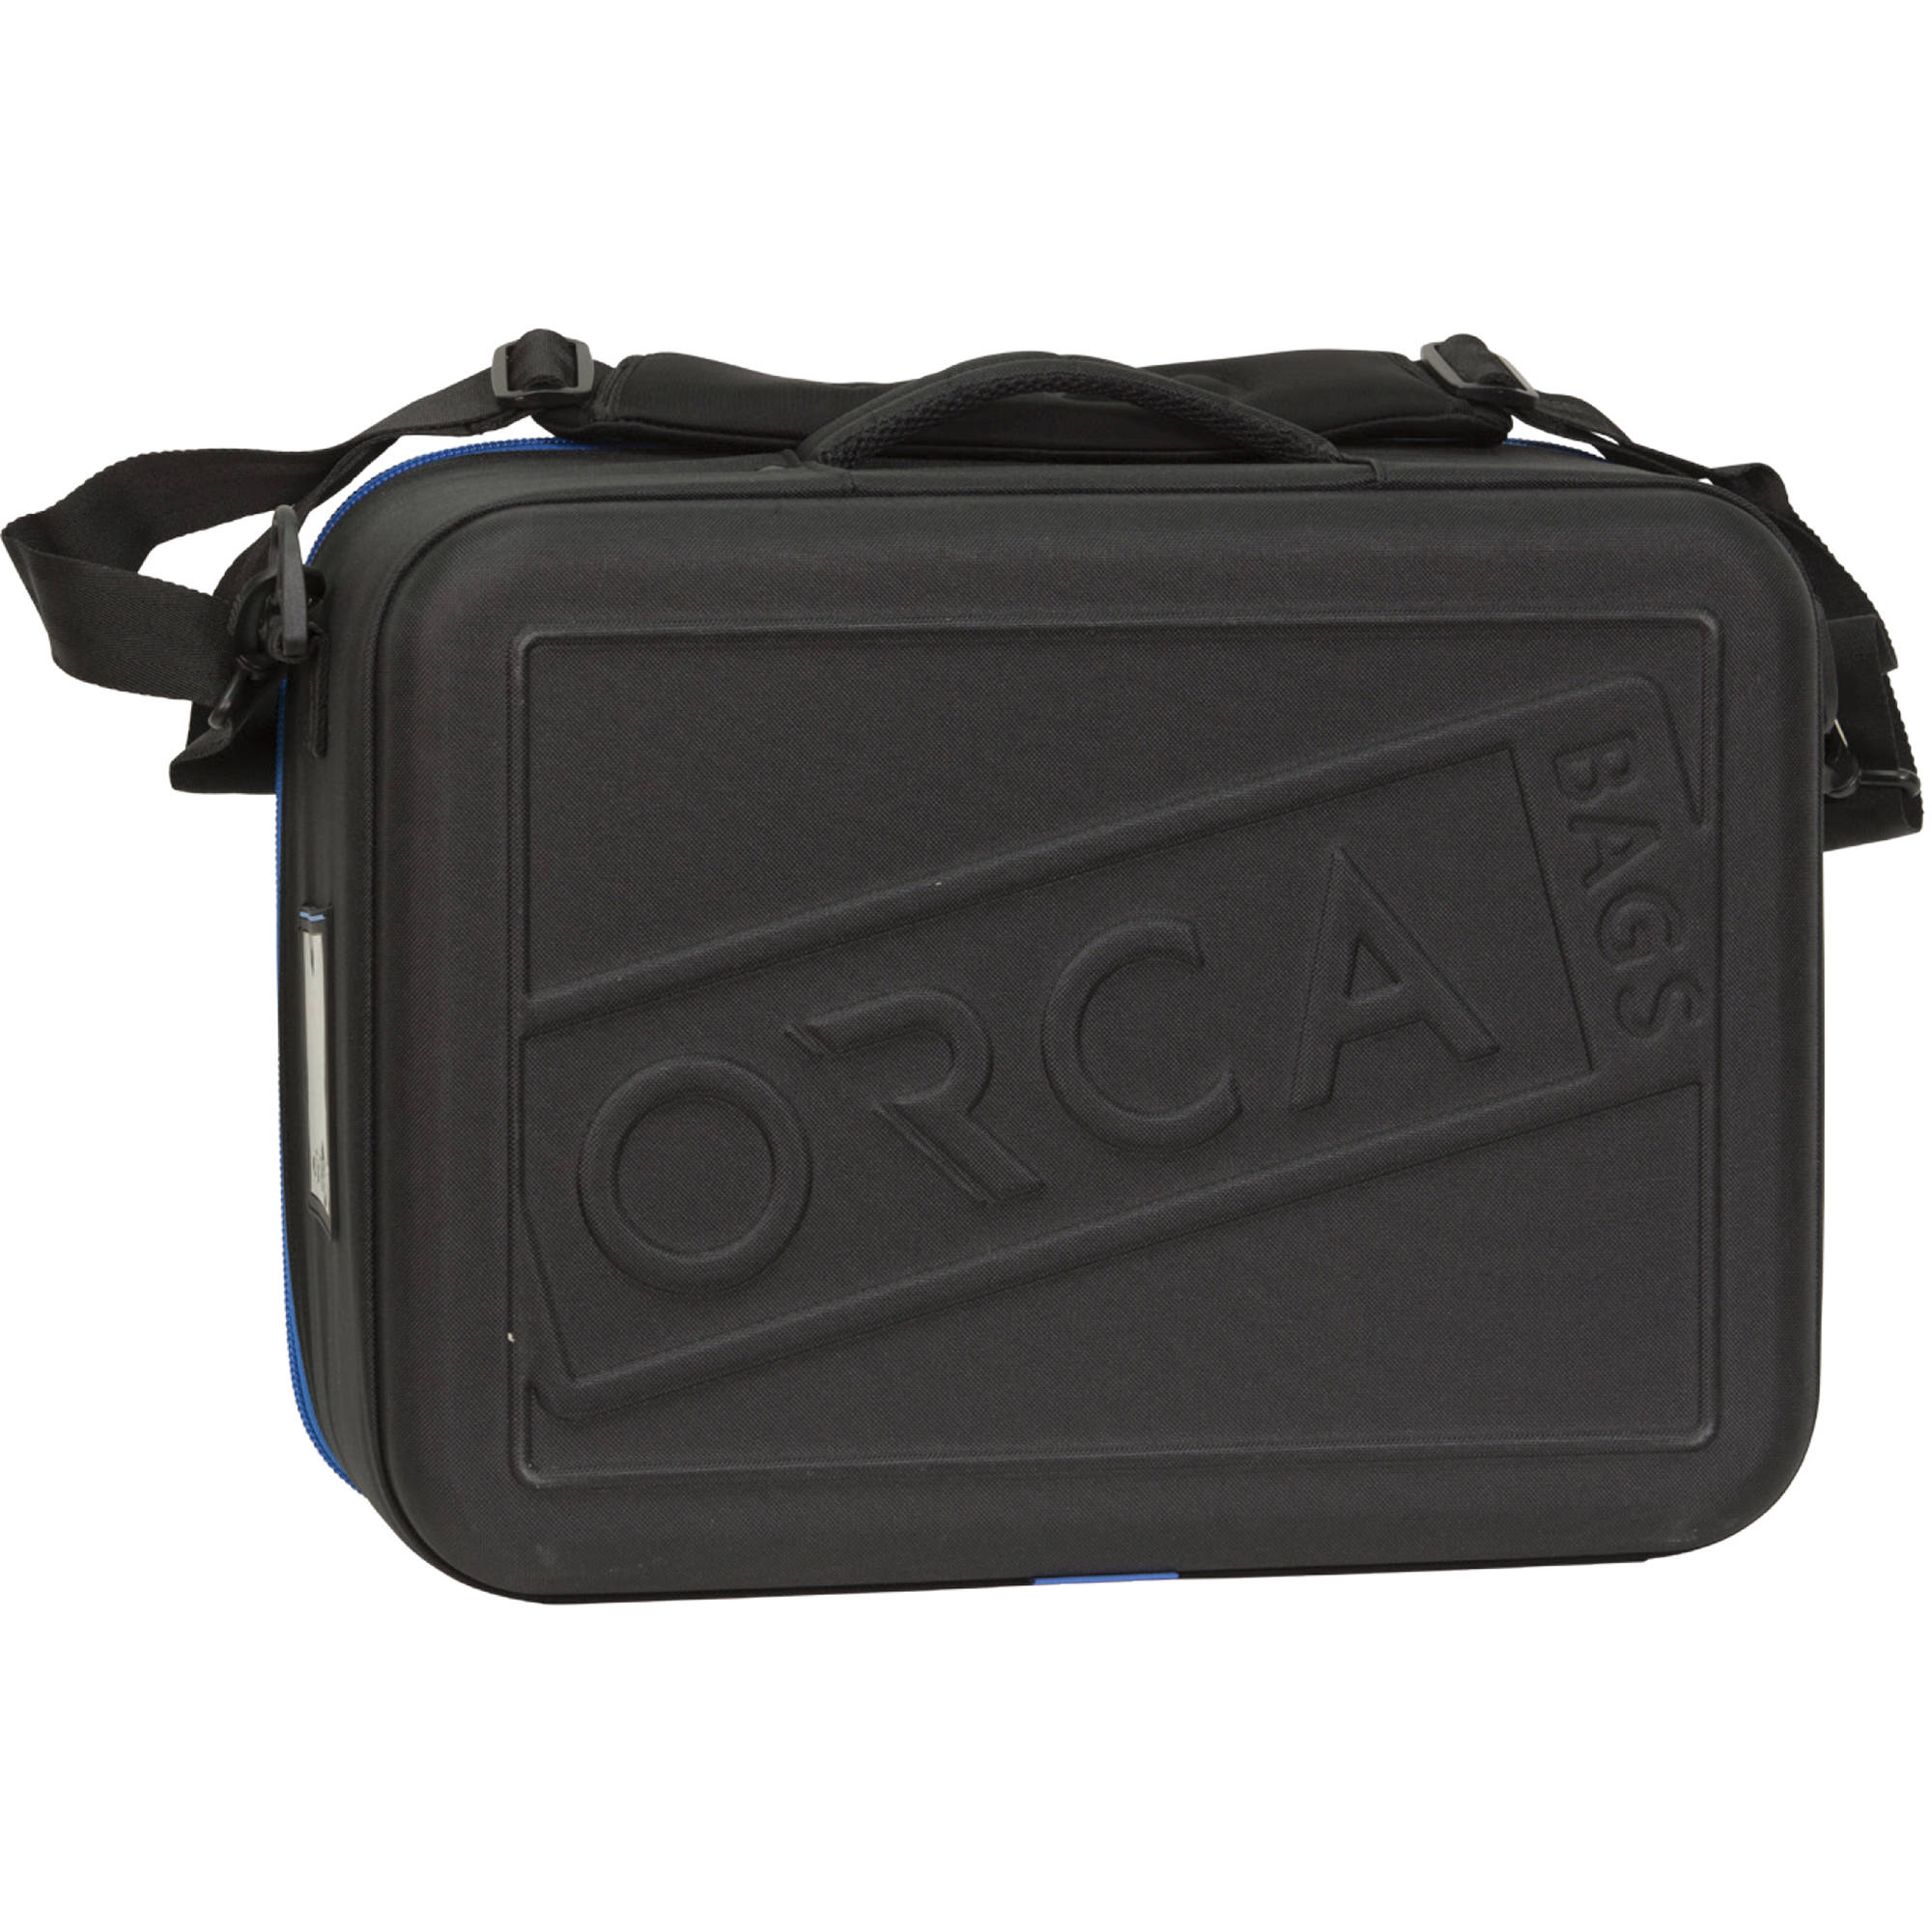 registered orca bn airmail adapters to watches order usd suppaparts add